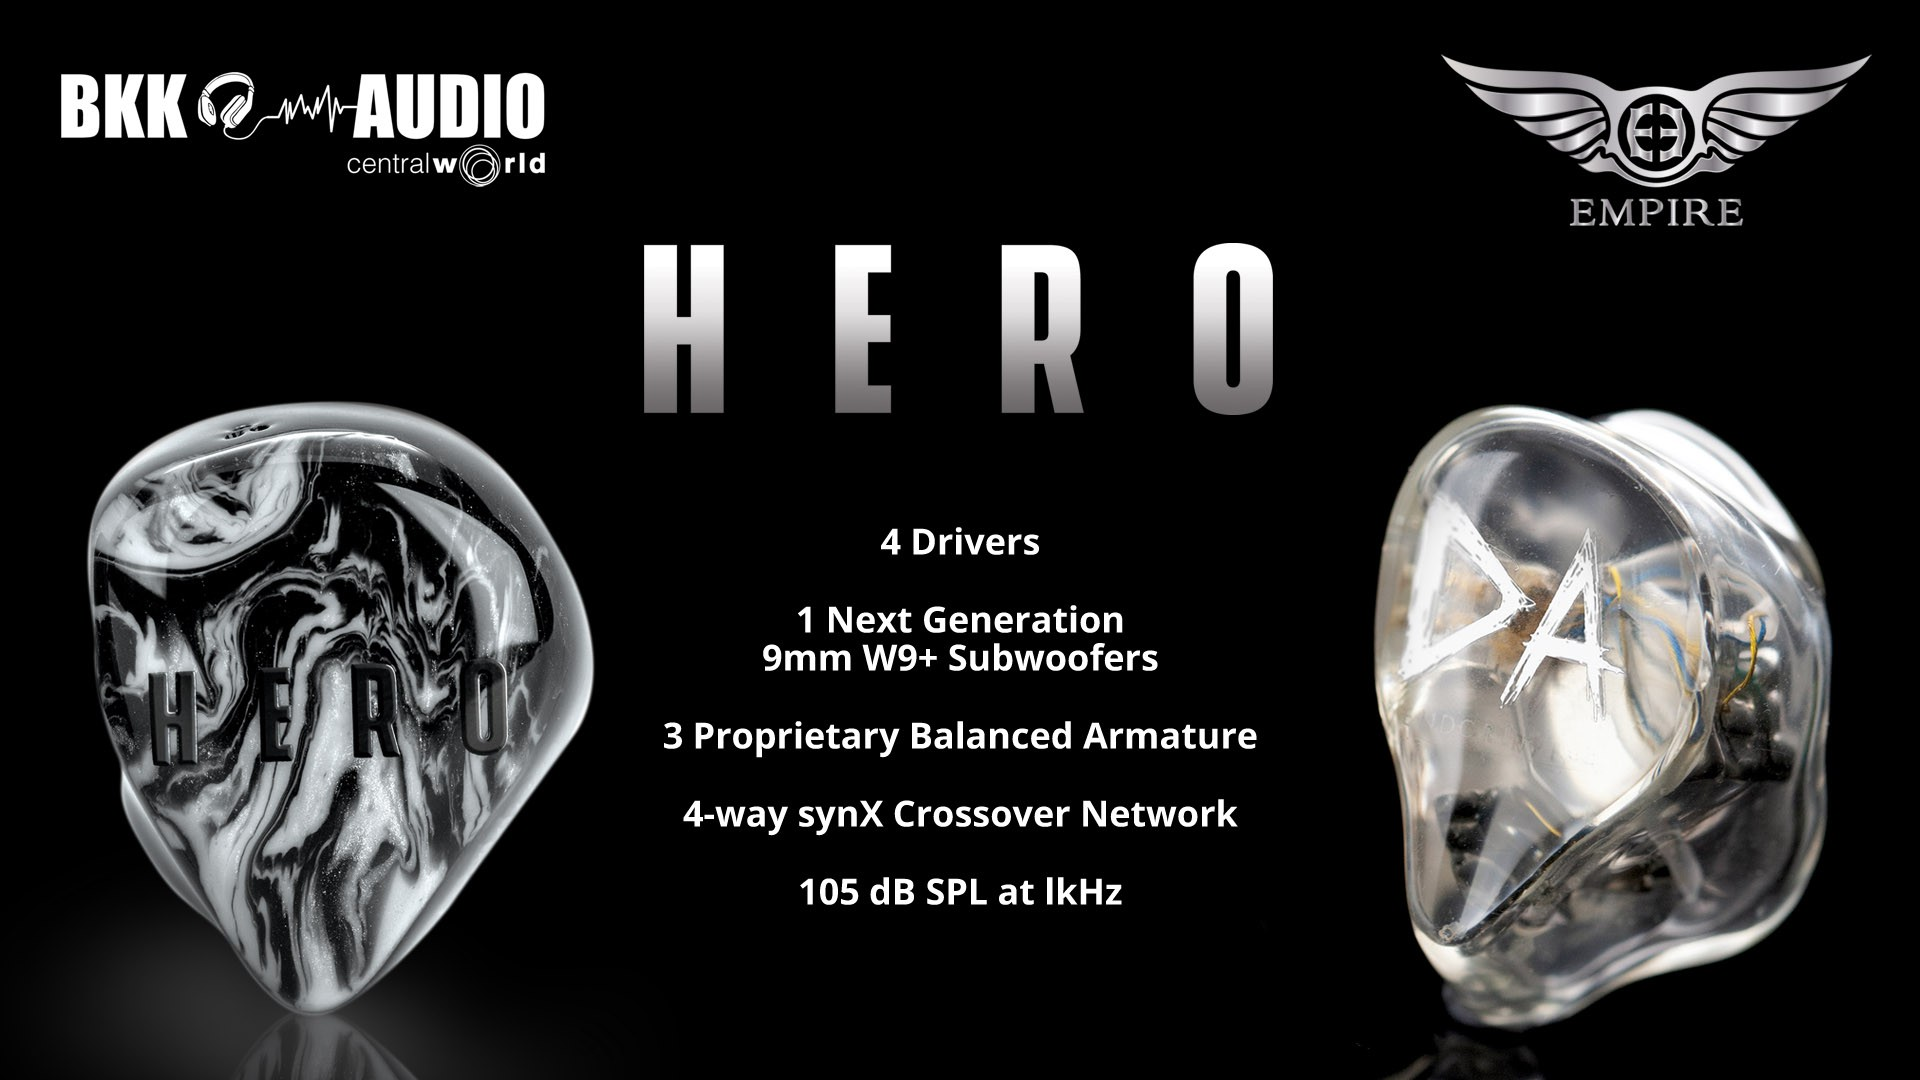 Rollup print and ads for our New CIEMs/UIEMs Empire Ears Odin and Hero